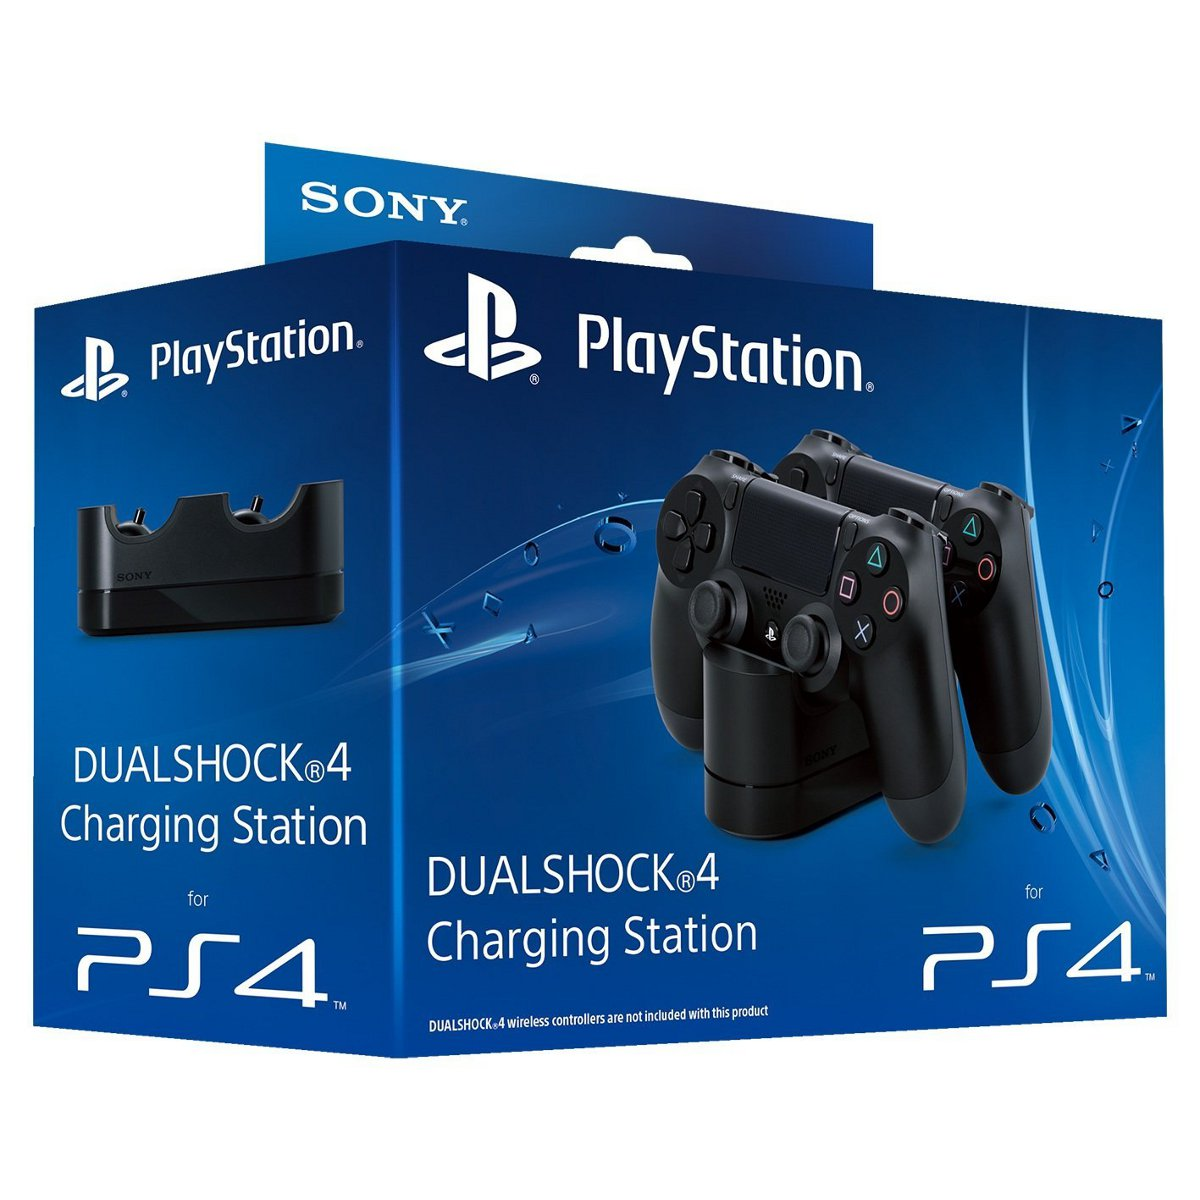 sony playstation dualshock 4 charging station accessoires ps4 sony interactive entertainment. Black Bedroom Furniture Sets. Home Design Ideas